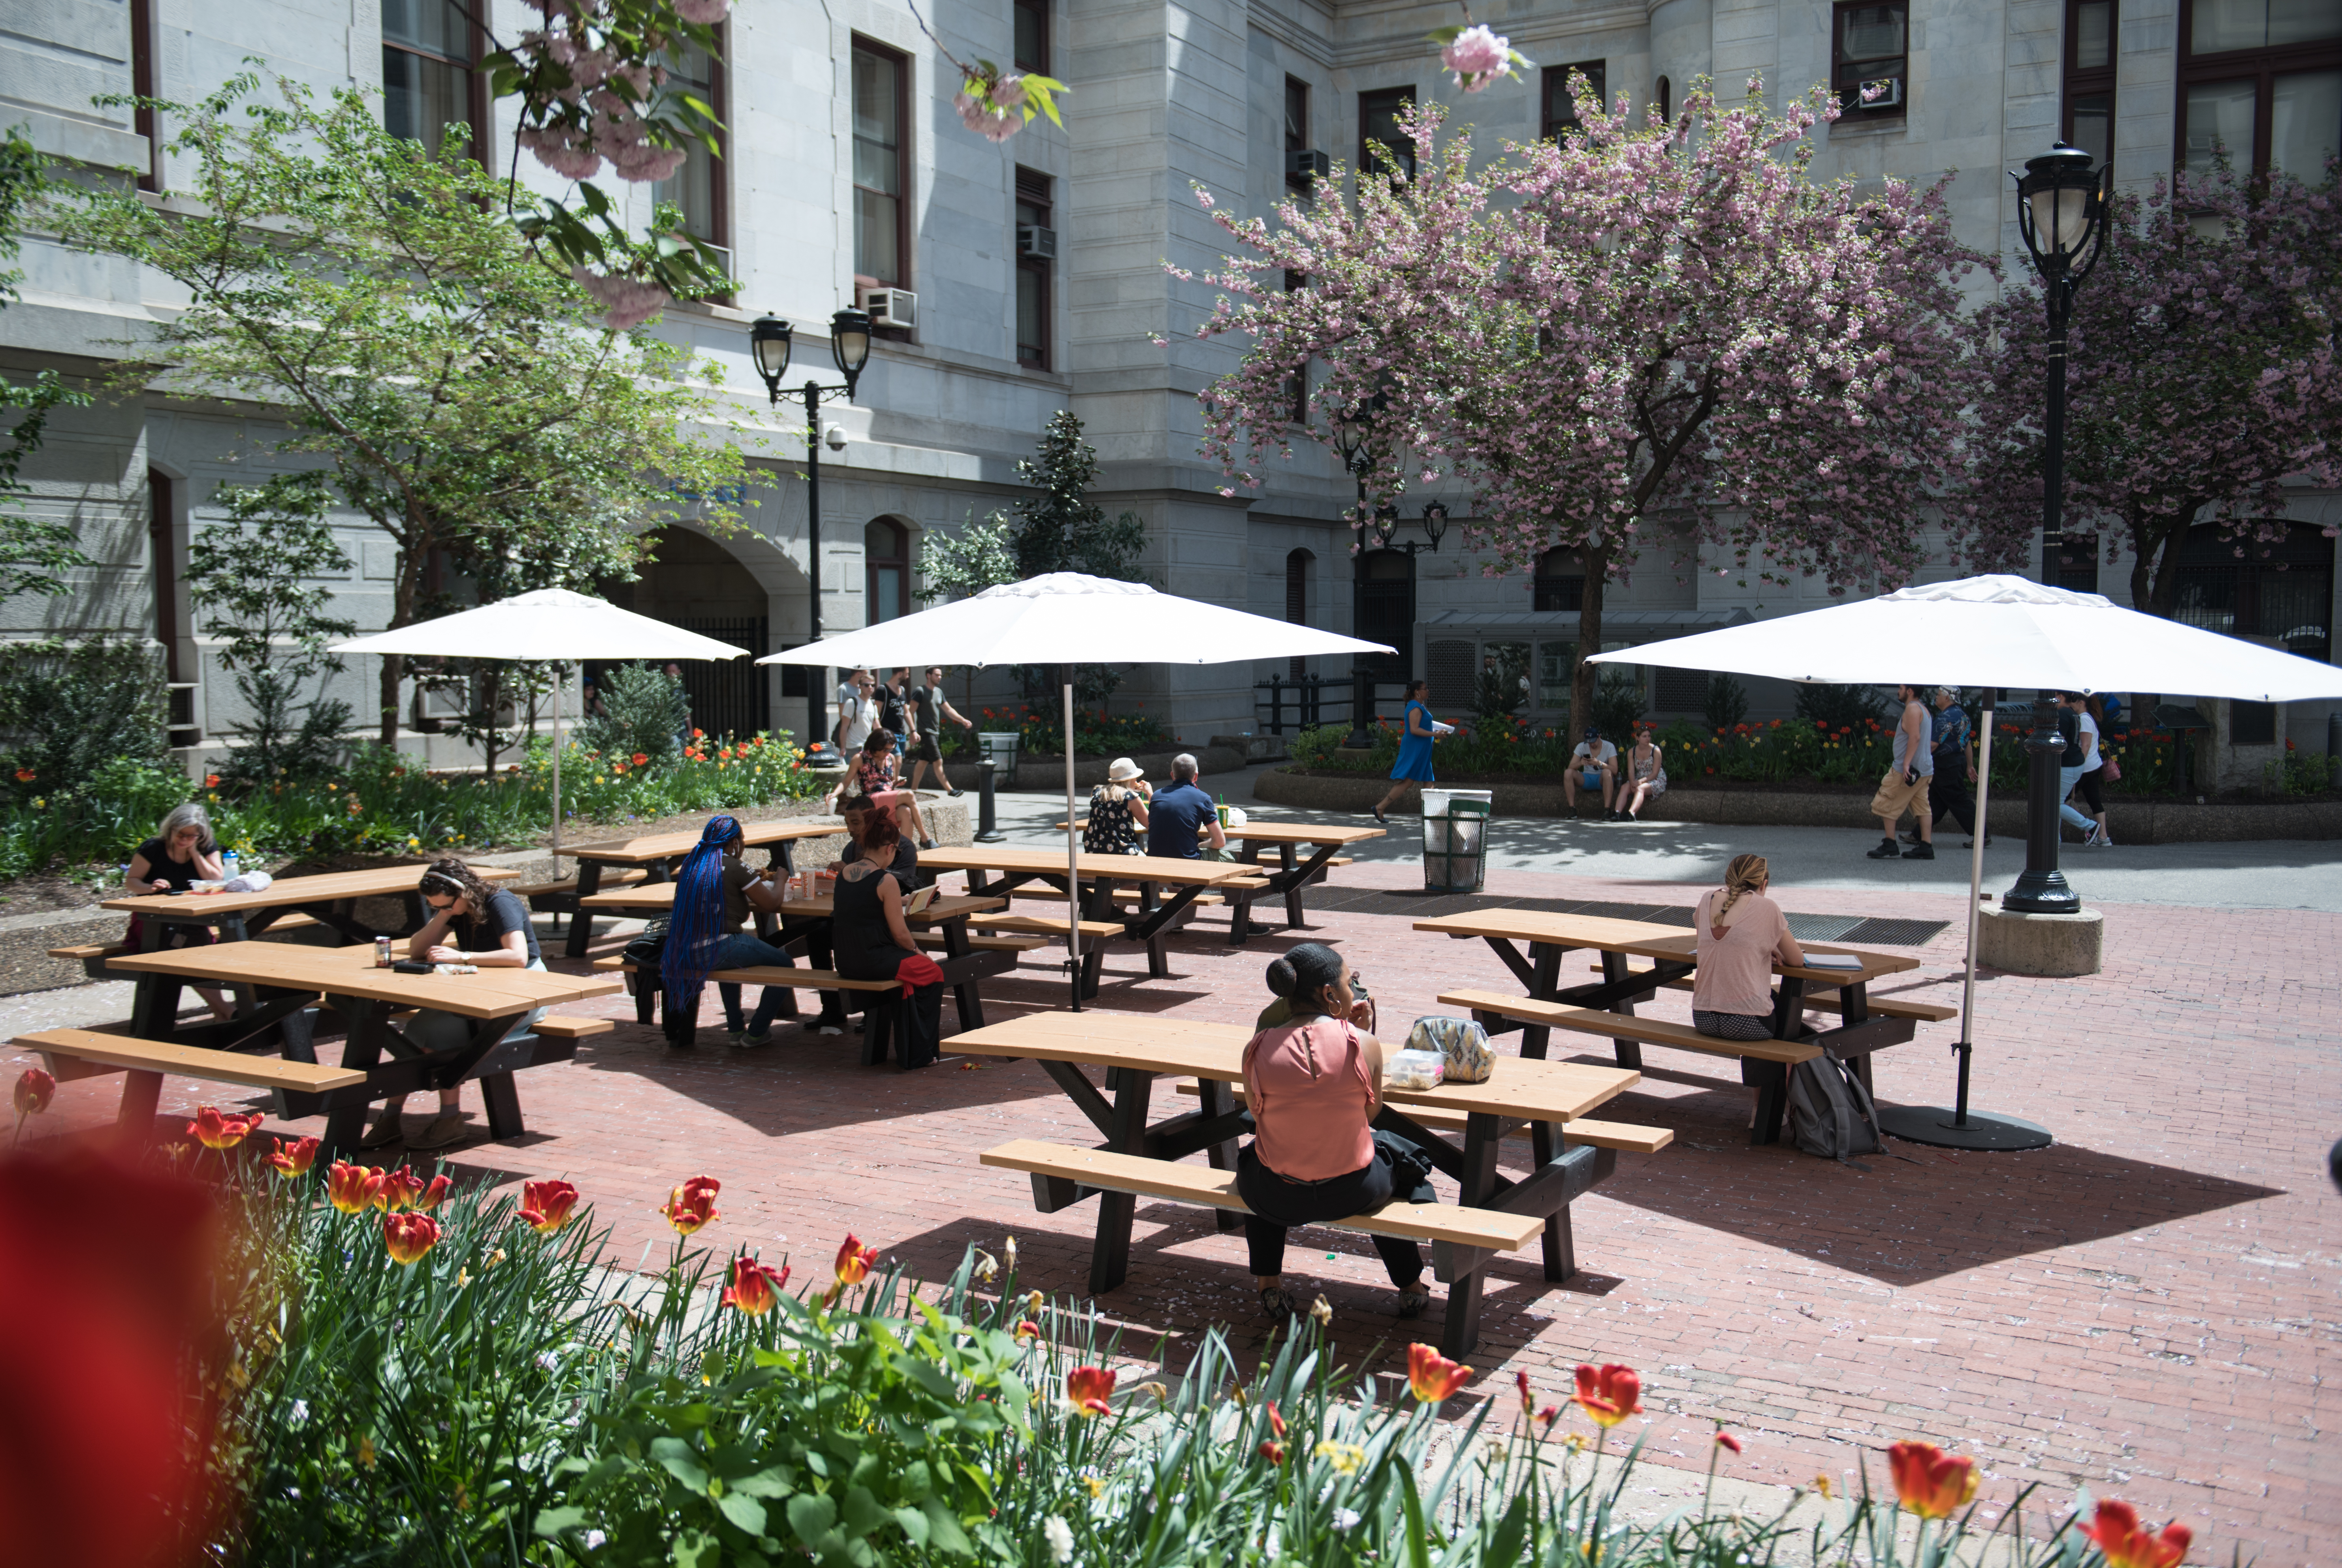 At the center of City Hall, a courtyard full of picnic tables provides a pleasant lunchtime refuge away from traffic.